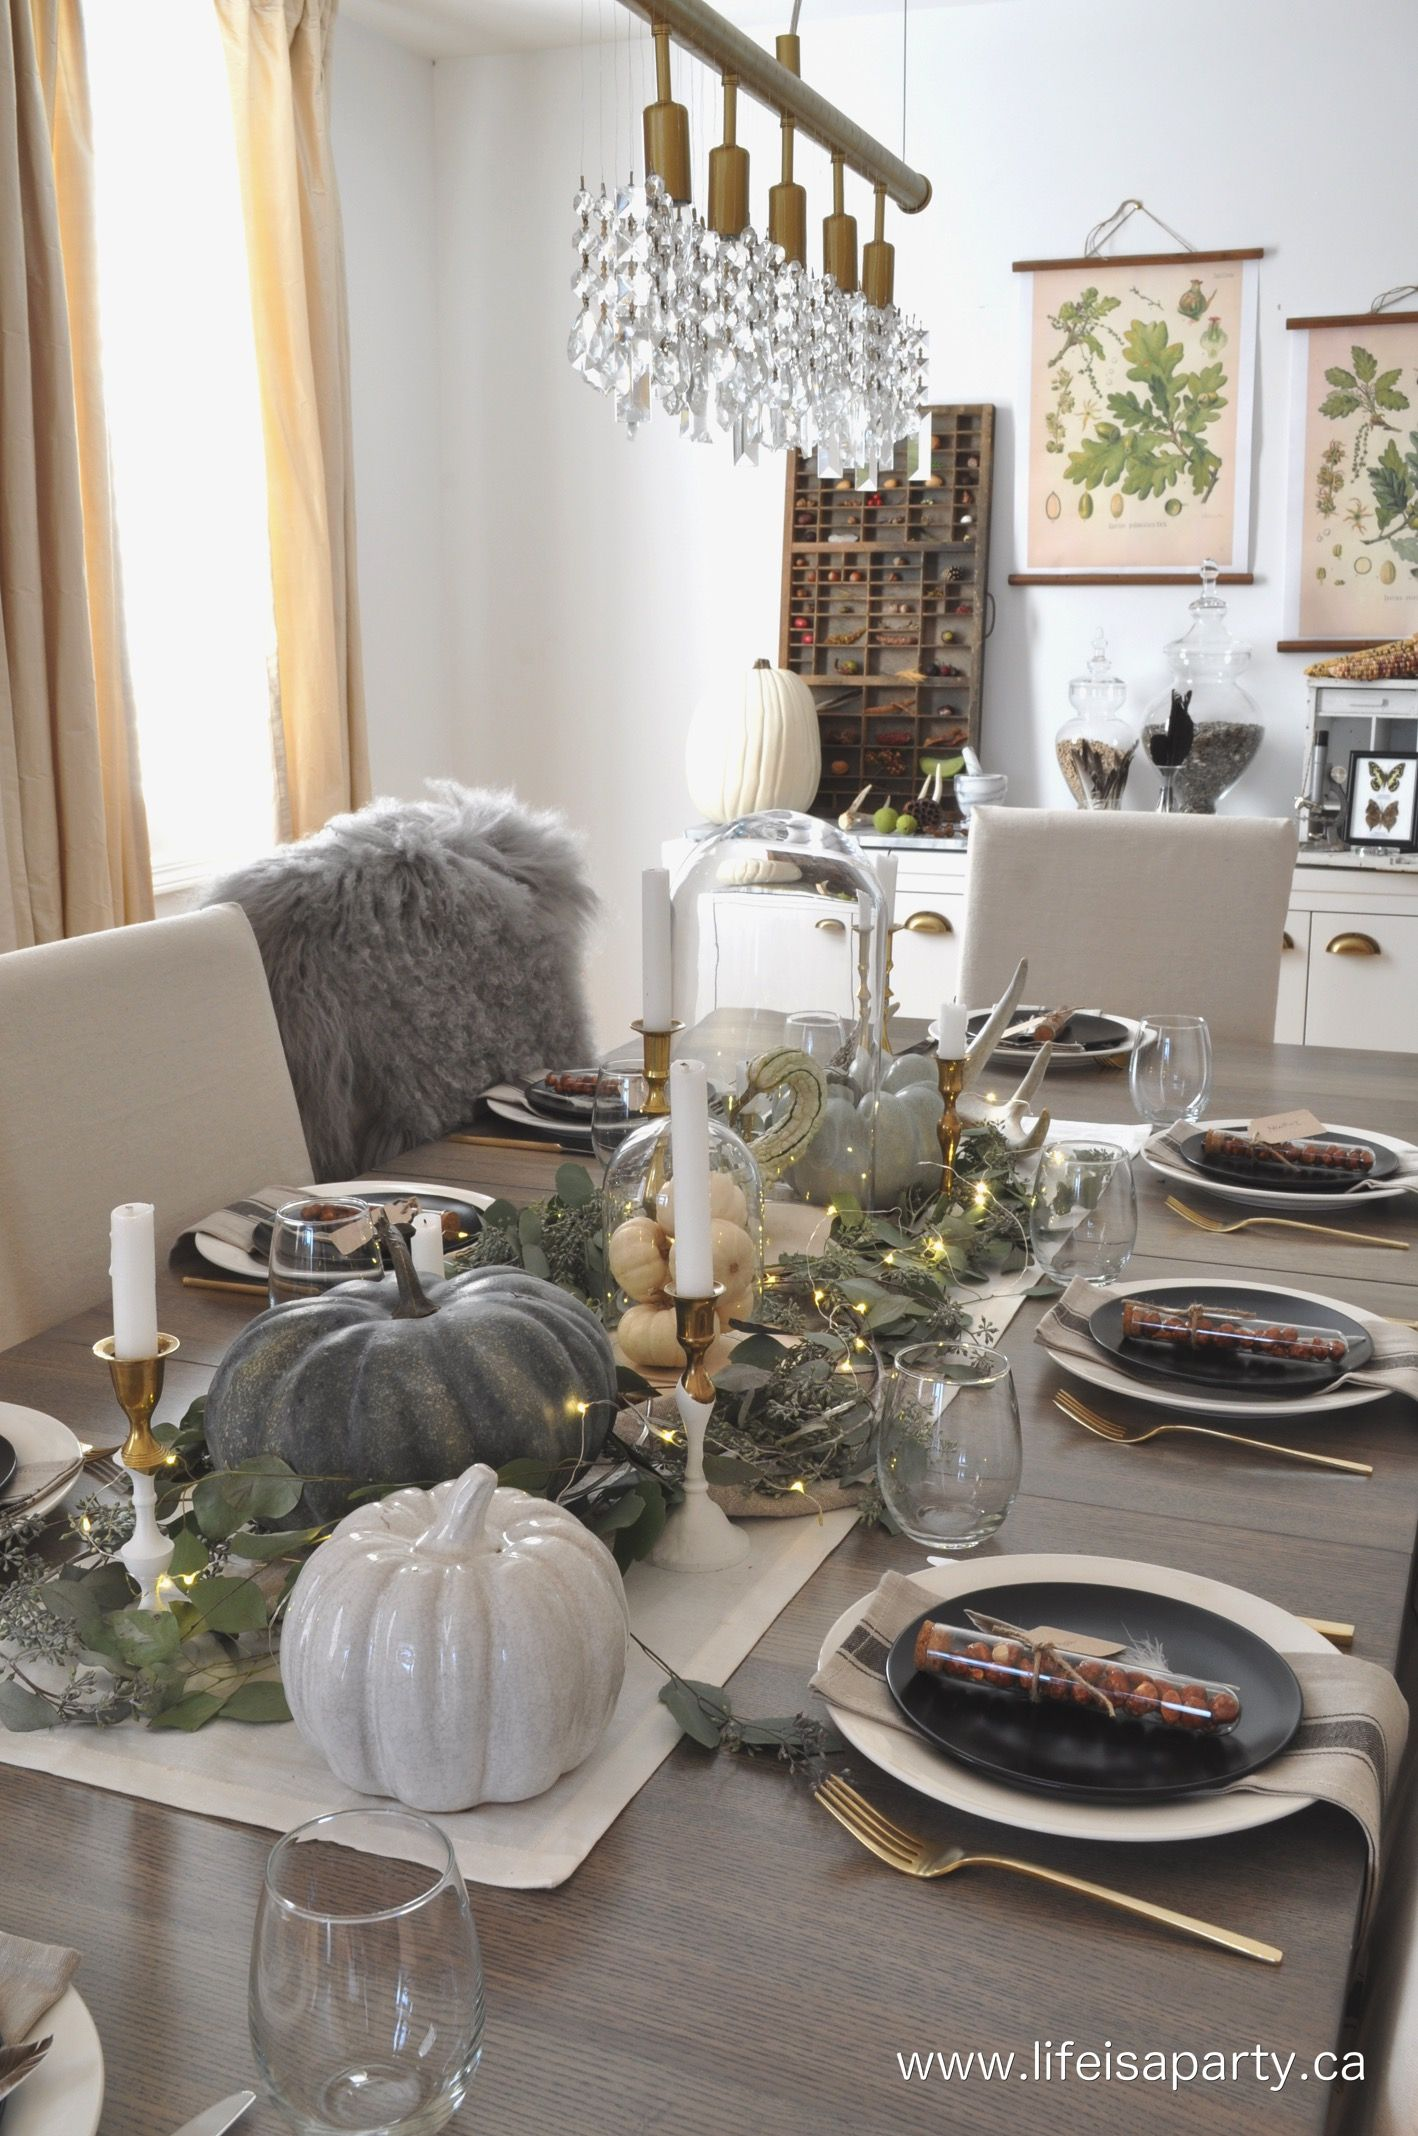 There are others that you can handle yourself with a little knowledge or a glance at a youtube video or. Fall Home Tour -Rustic Neutral Fall Home Tour with lots of ...